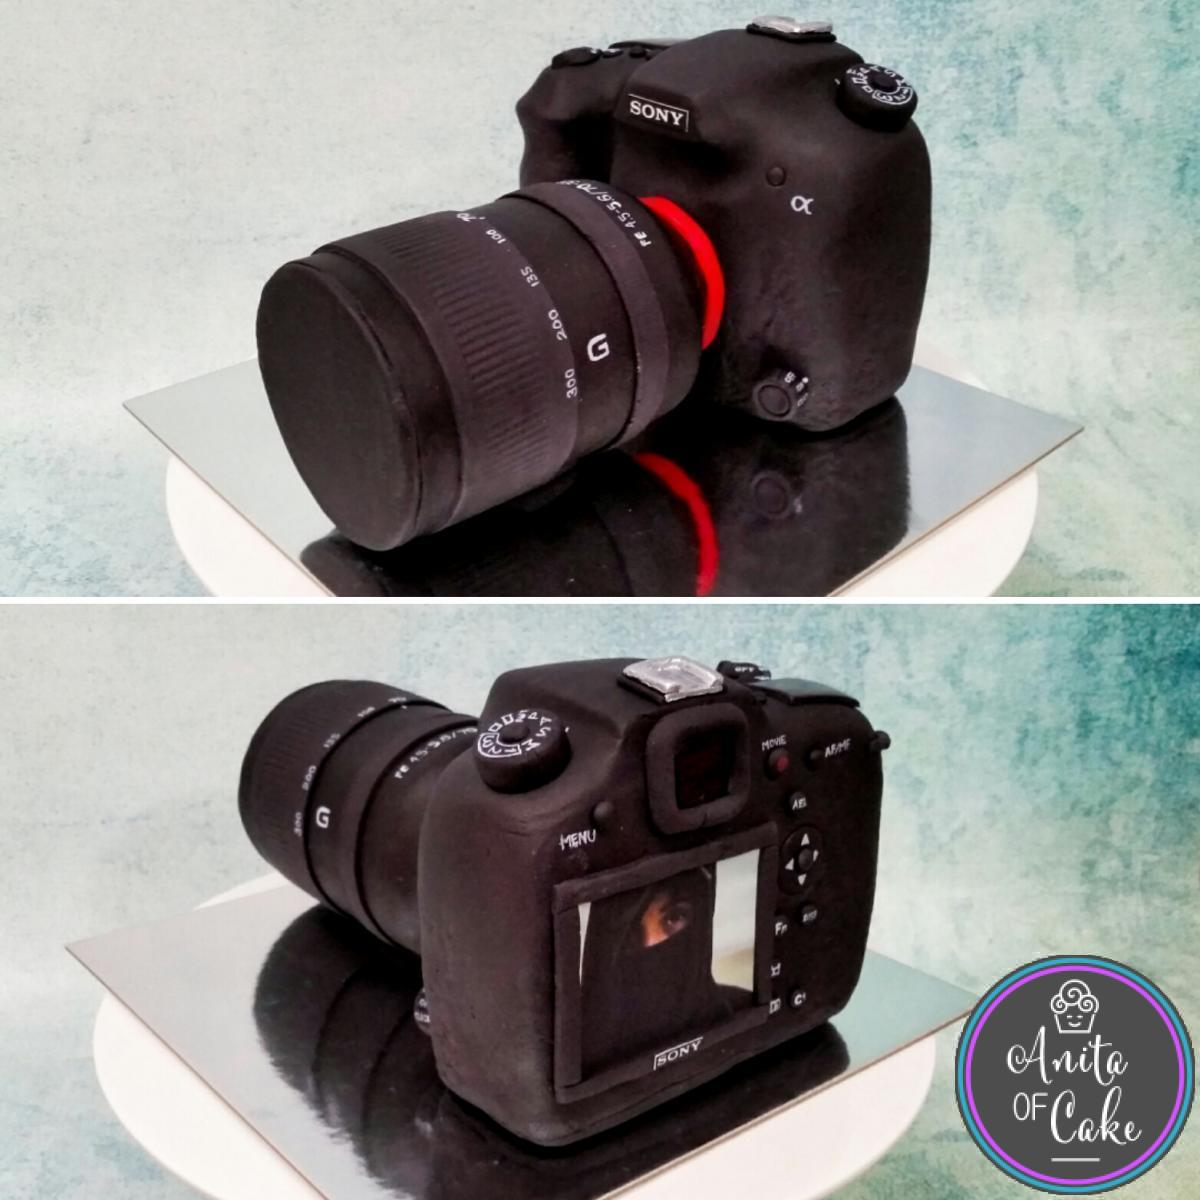 Sony DSLR camera cake topper